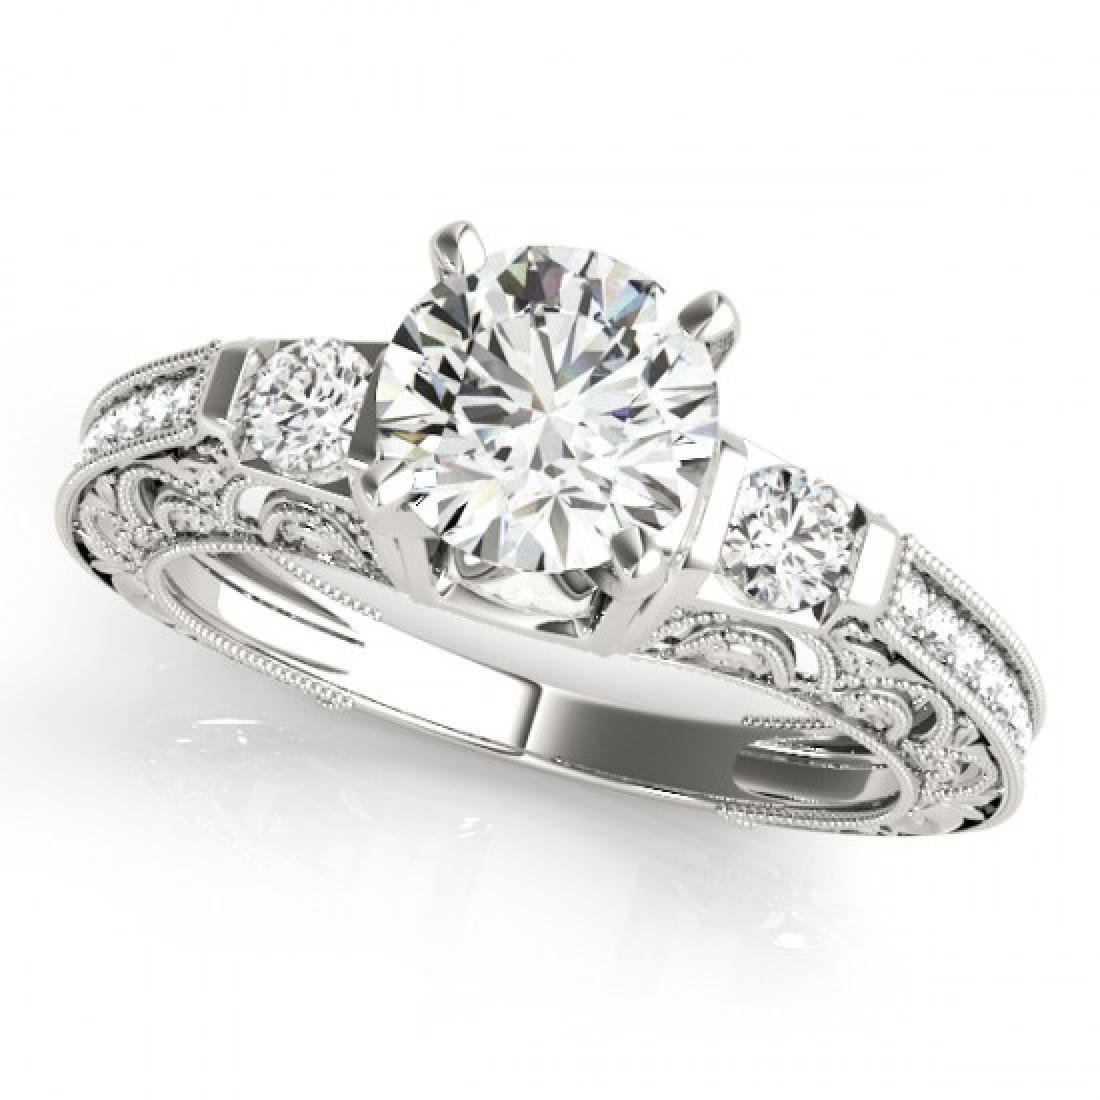 1.63 CTW Certified VS/SI Diamond Solitaire Antique Ring - 2